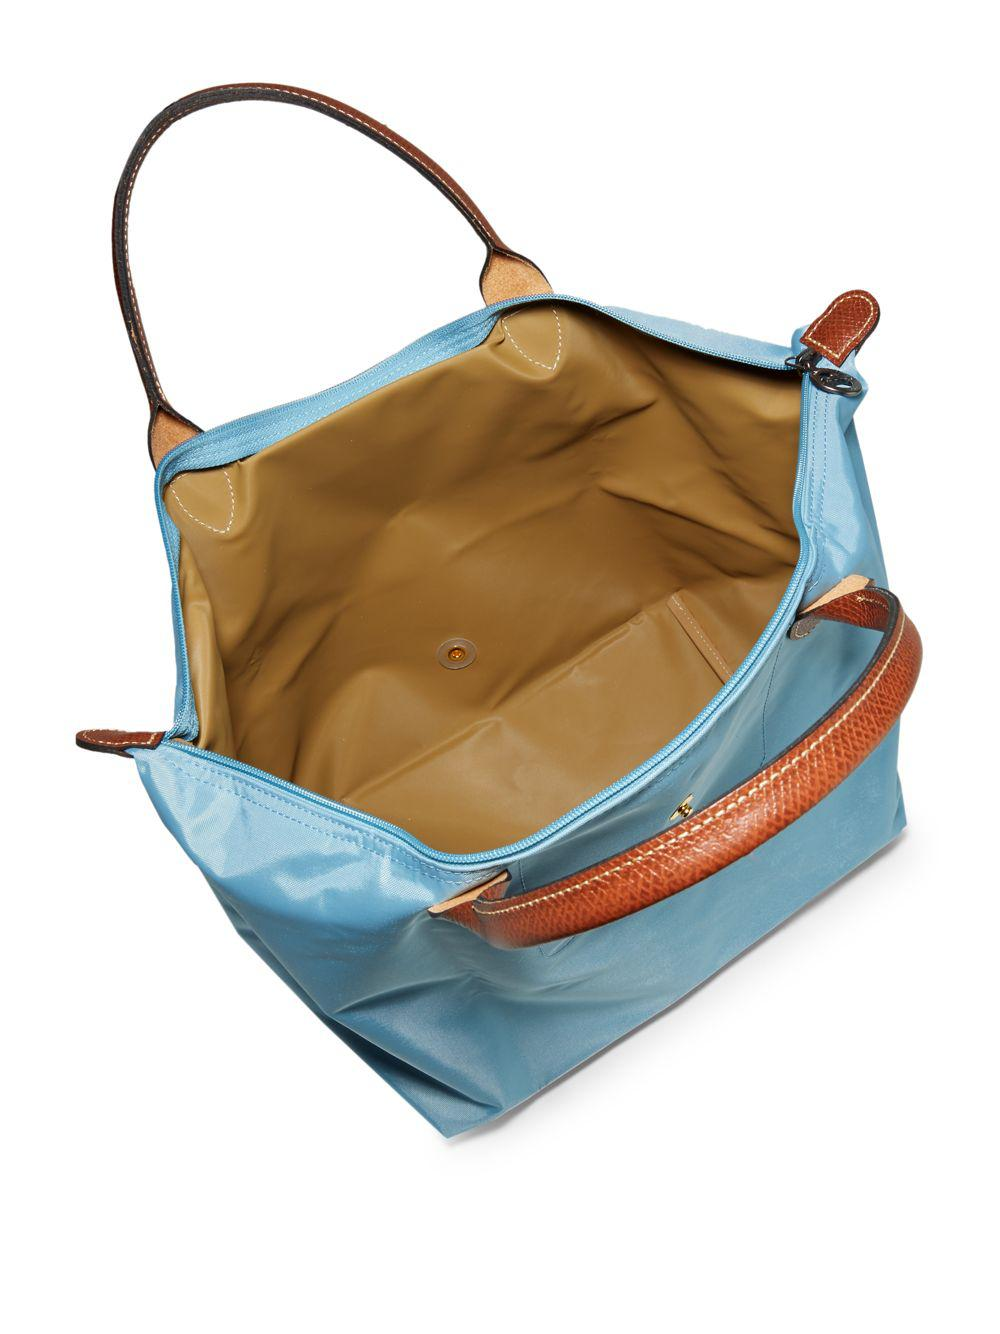 Longchamp Leather Le Pliage Tote Bag in Blue